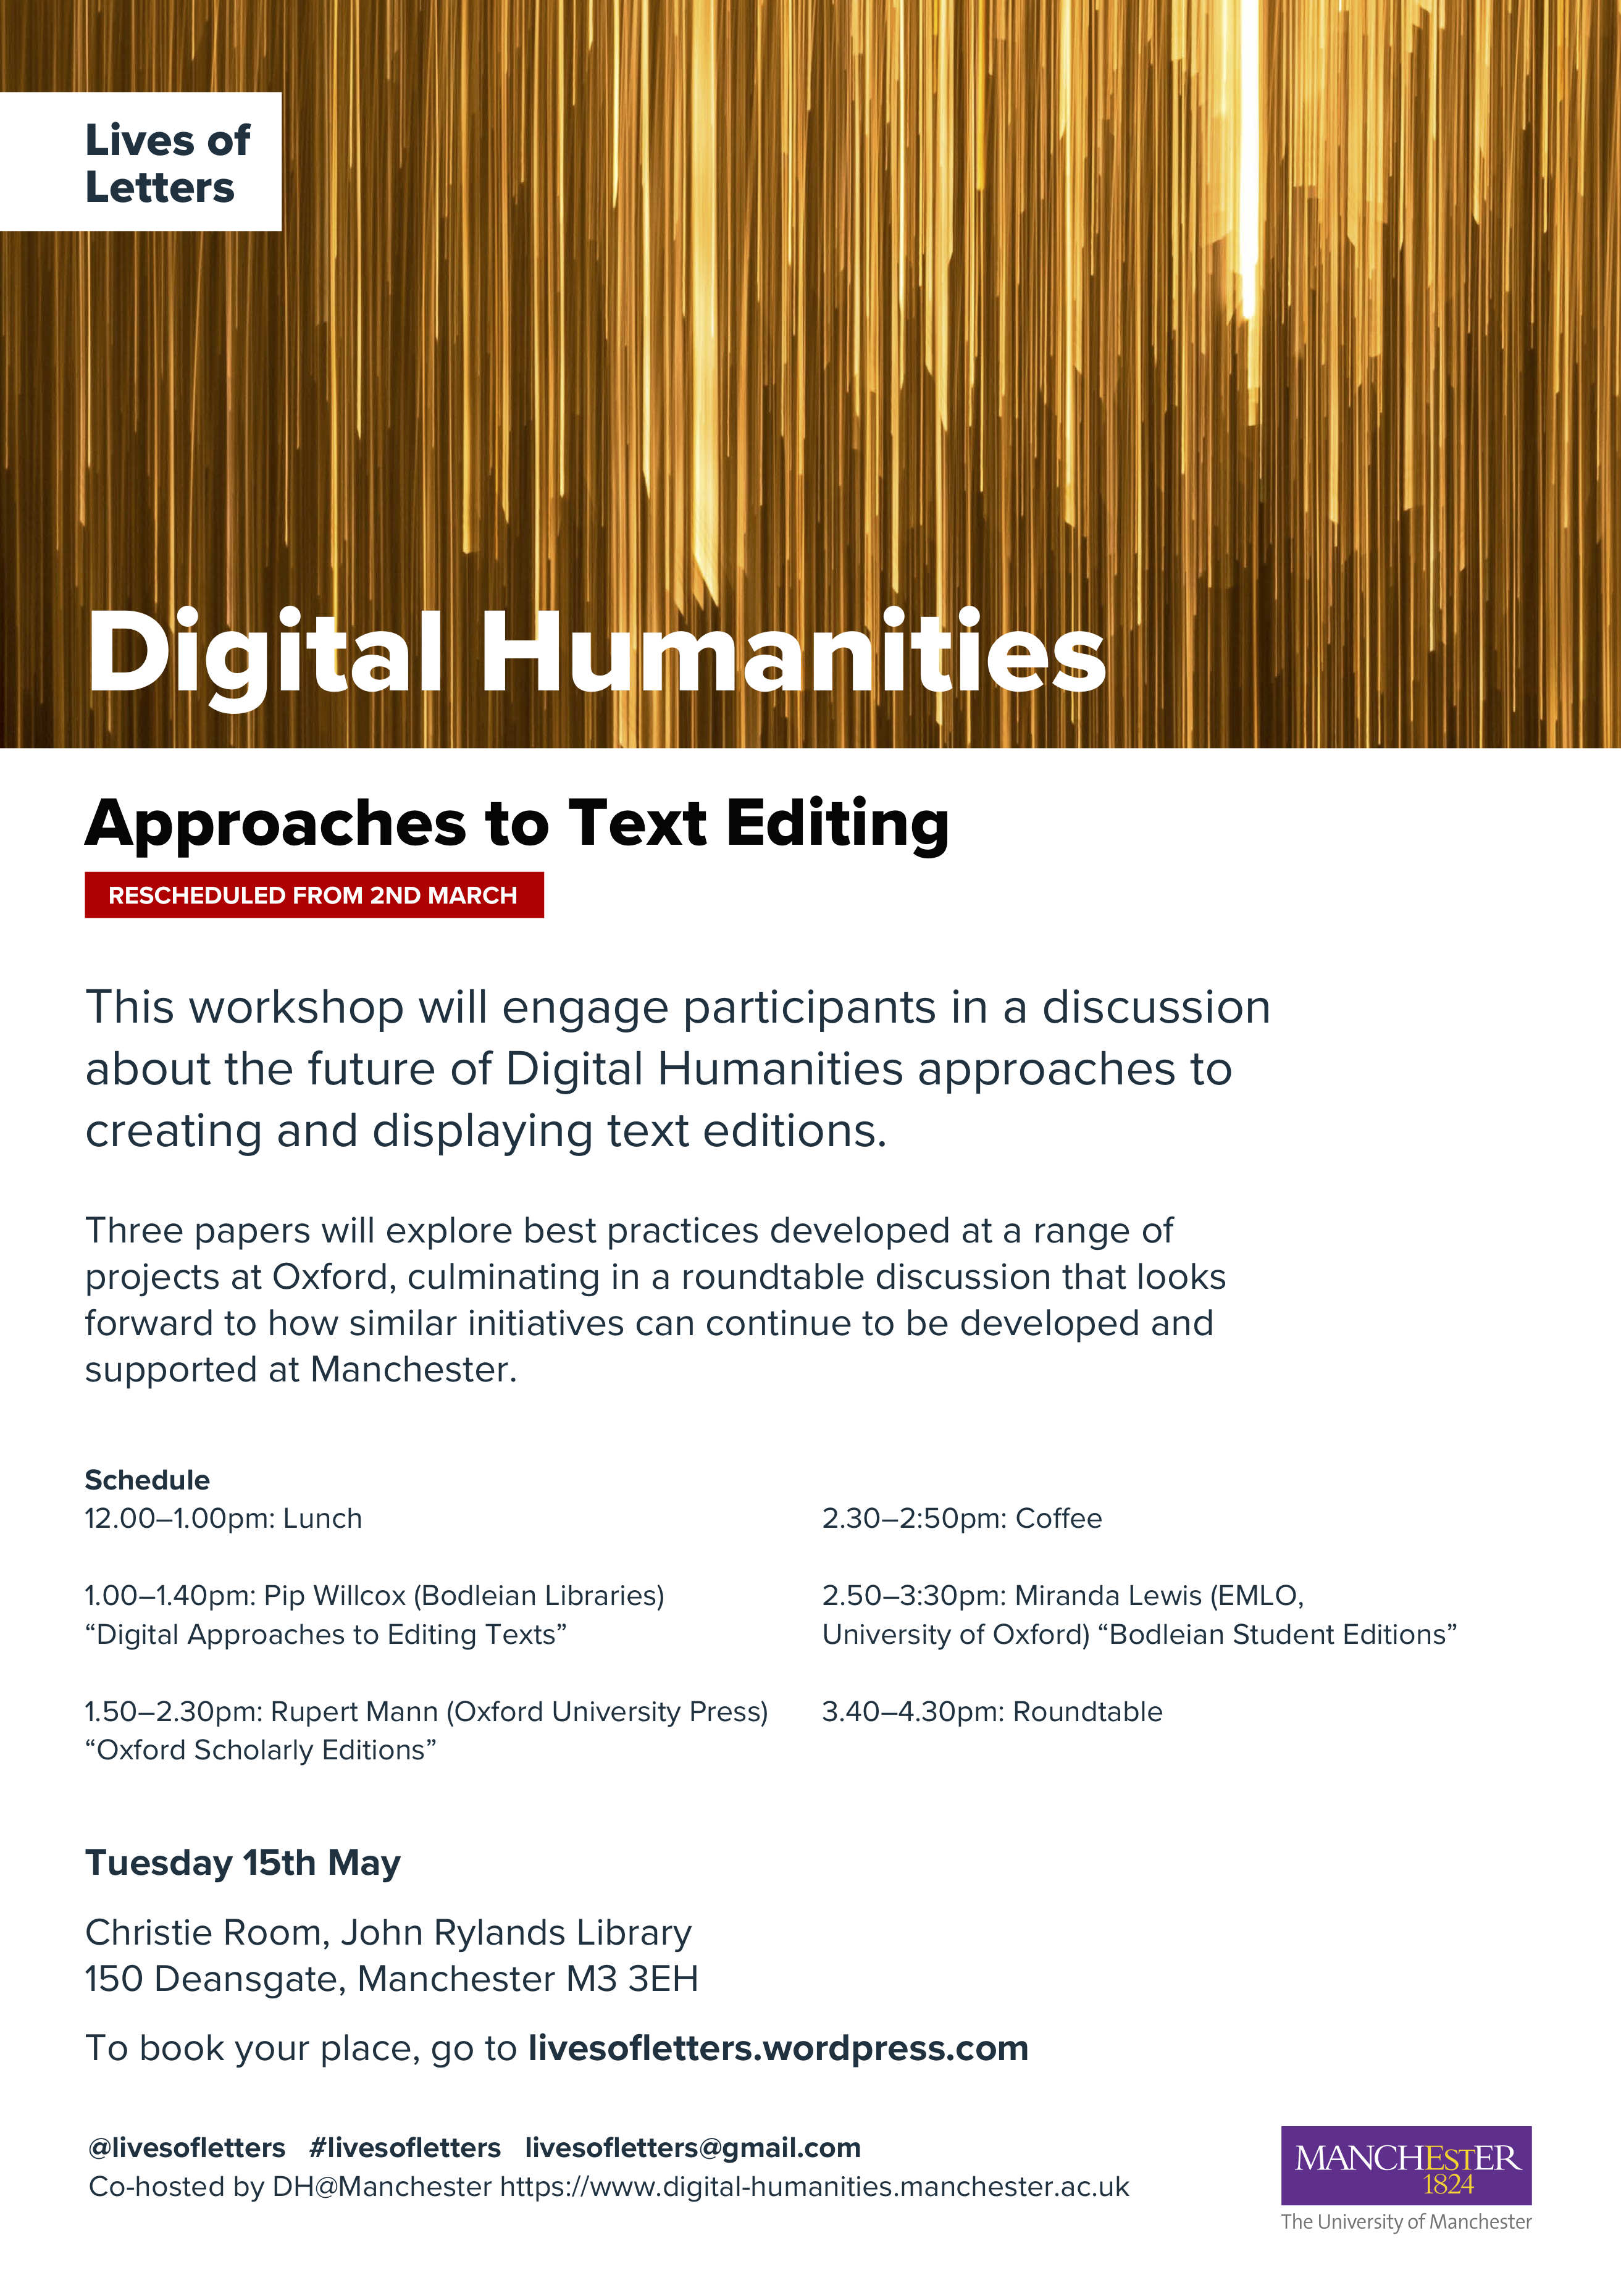 Lives of Letters Digital Humanities event 15 May 2018.png